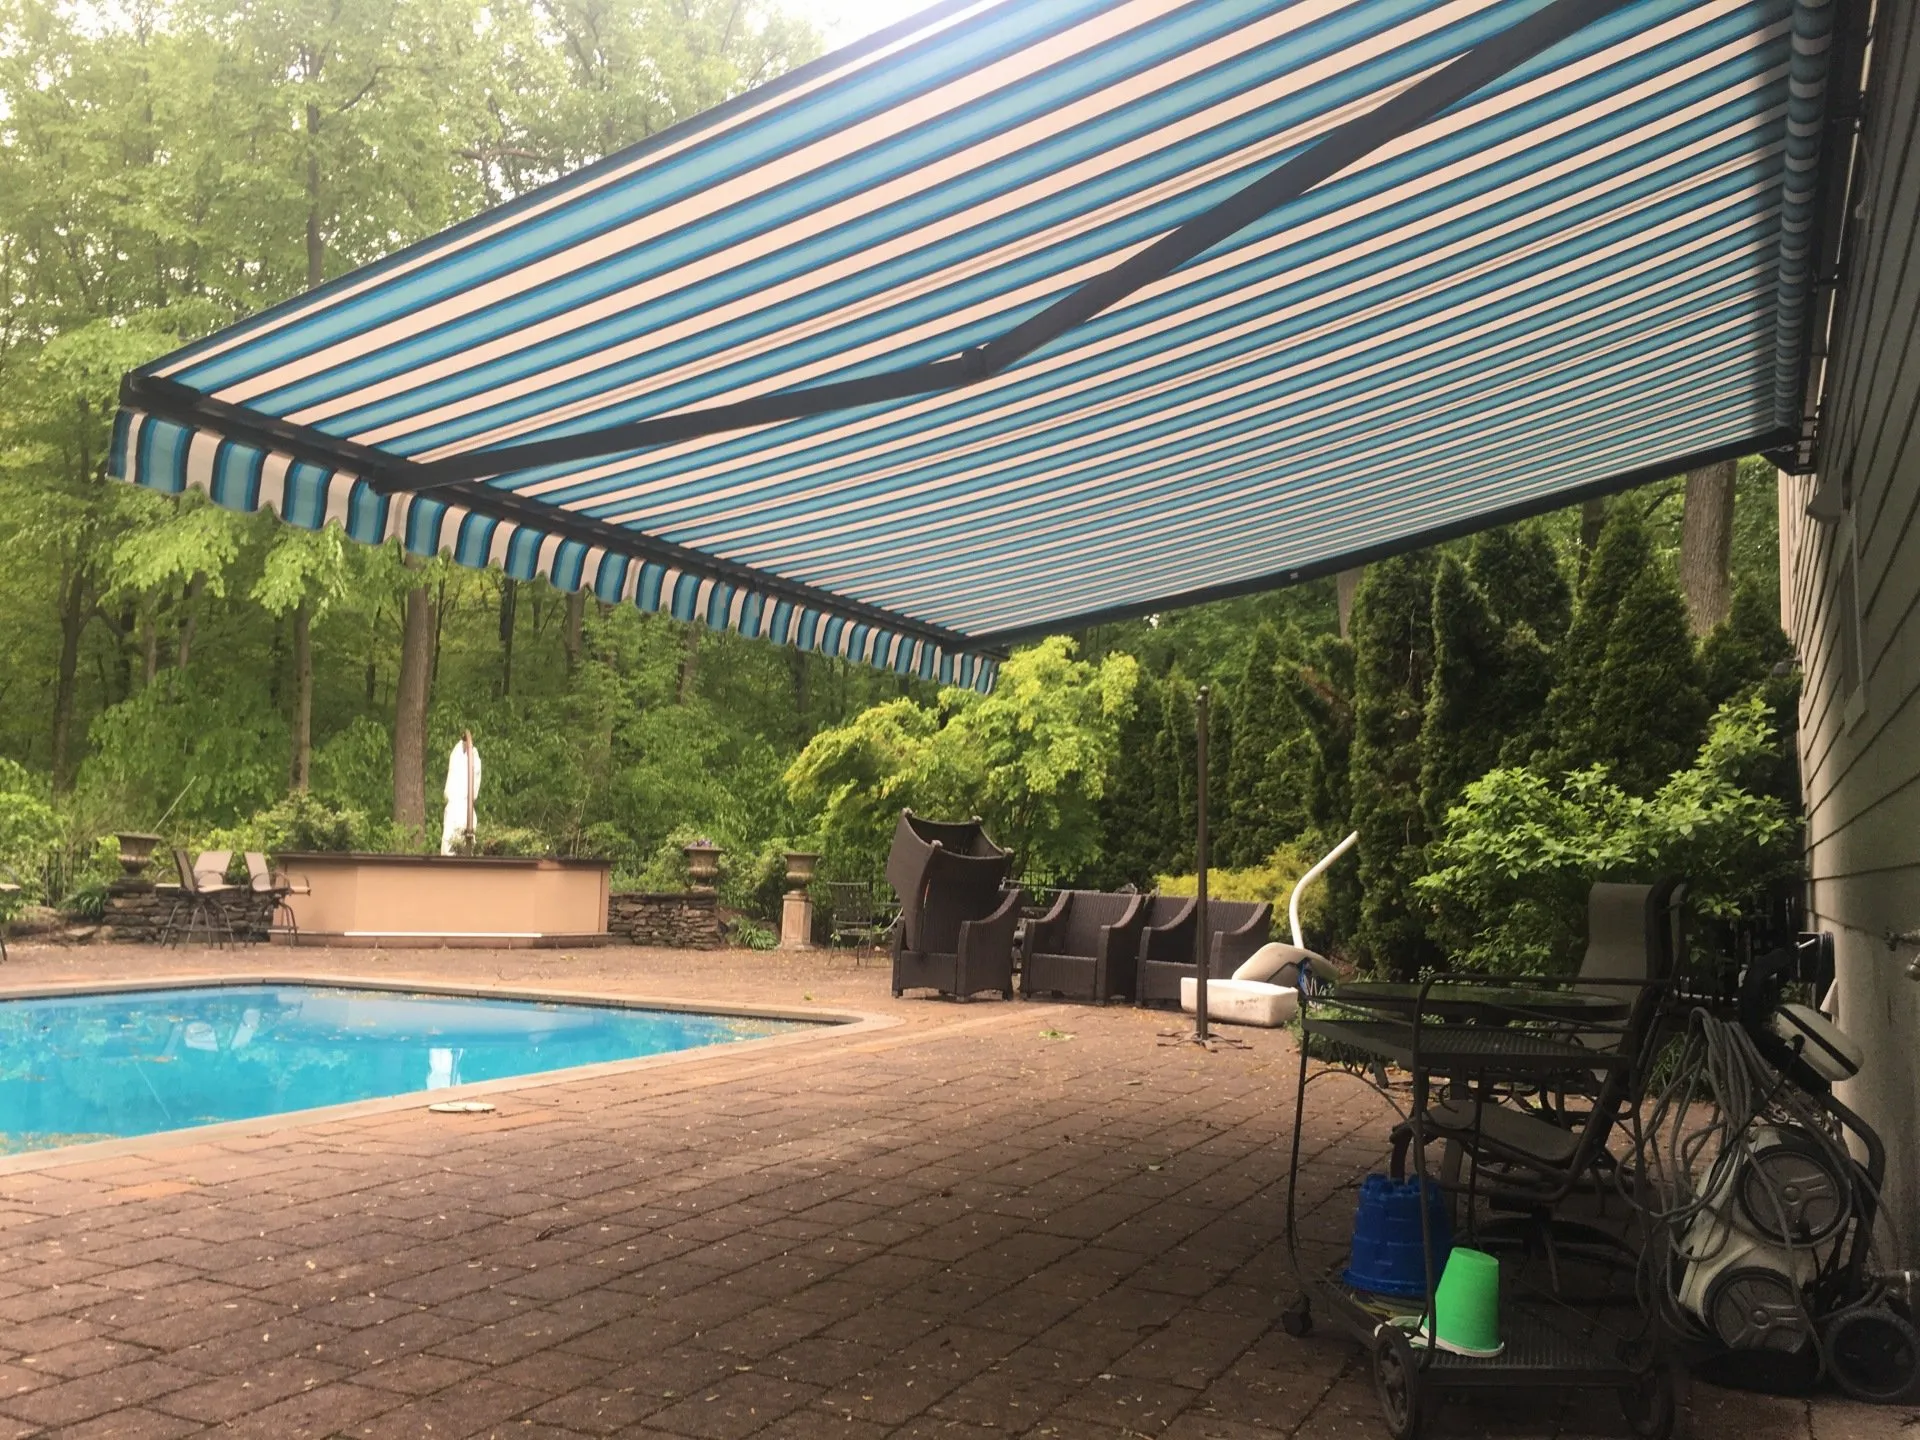 Retractable Awning For Deck or Patio | Ramsey Nj